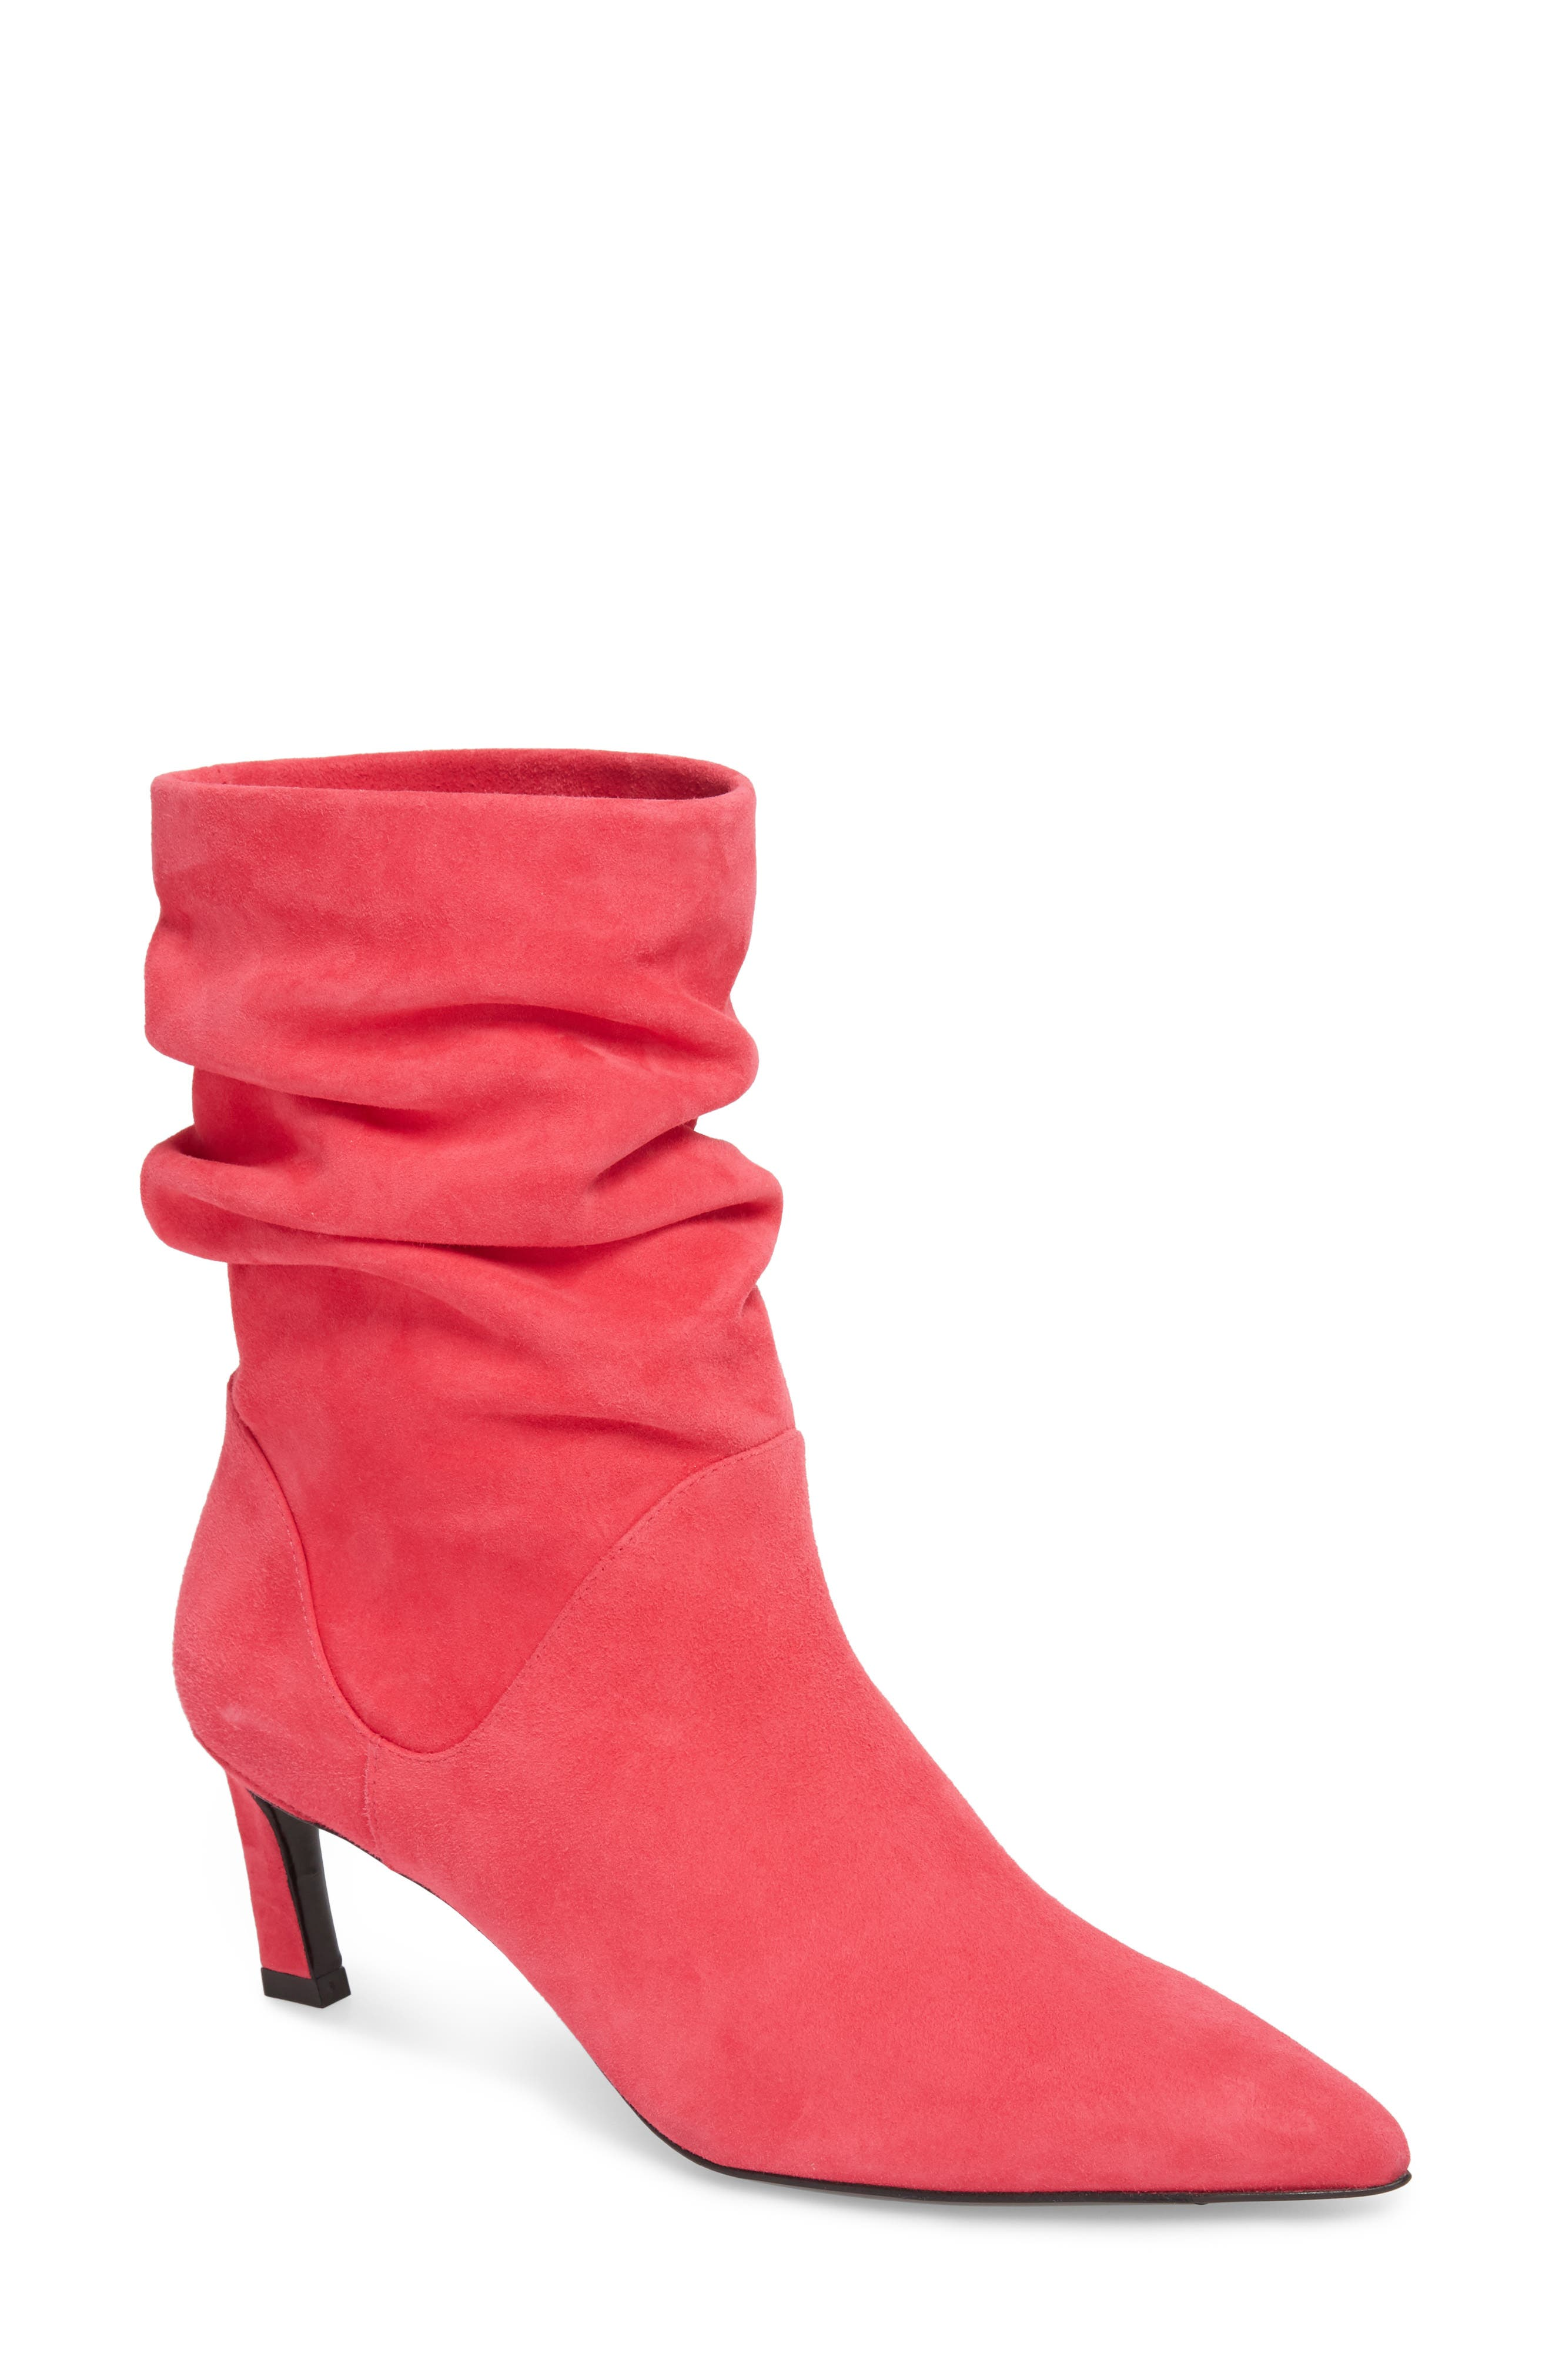 Demibenatar Slouch Bootie,                             Main thumbnail 1, color,                             Coral Luxe Suede